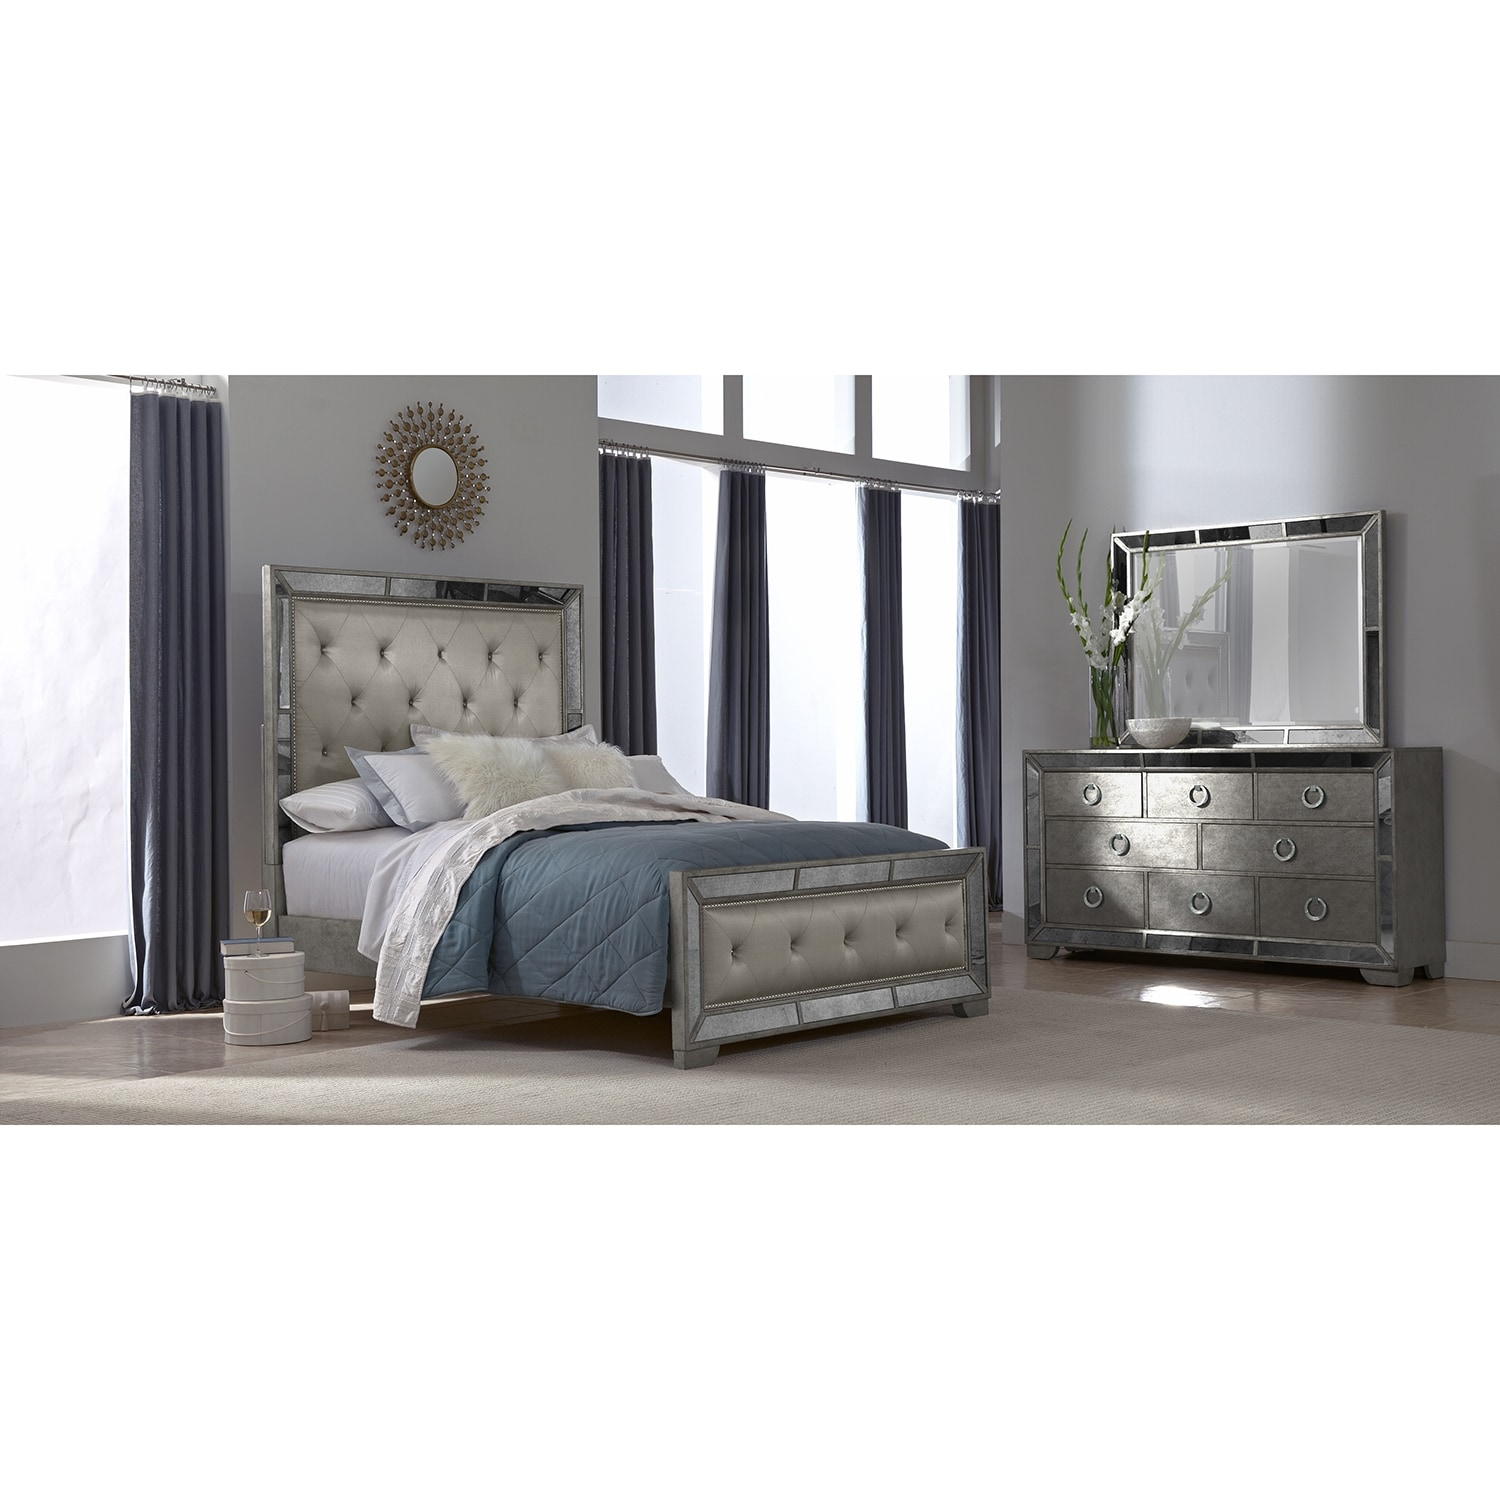 Angelina 5 pc queen bedroom american signature furniture for Furniture queen bedroom sets